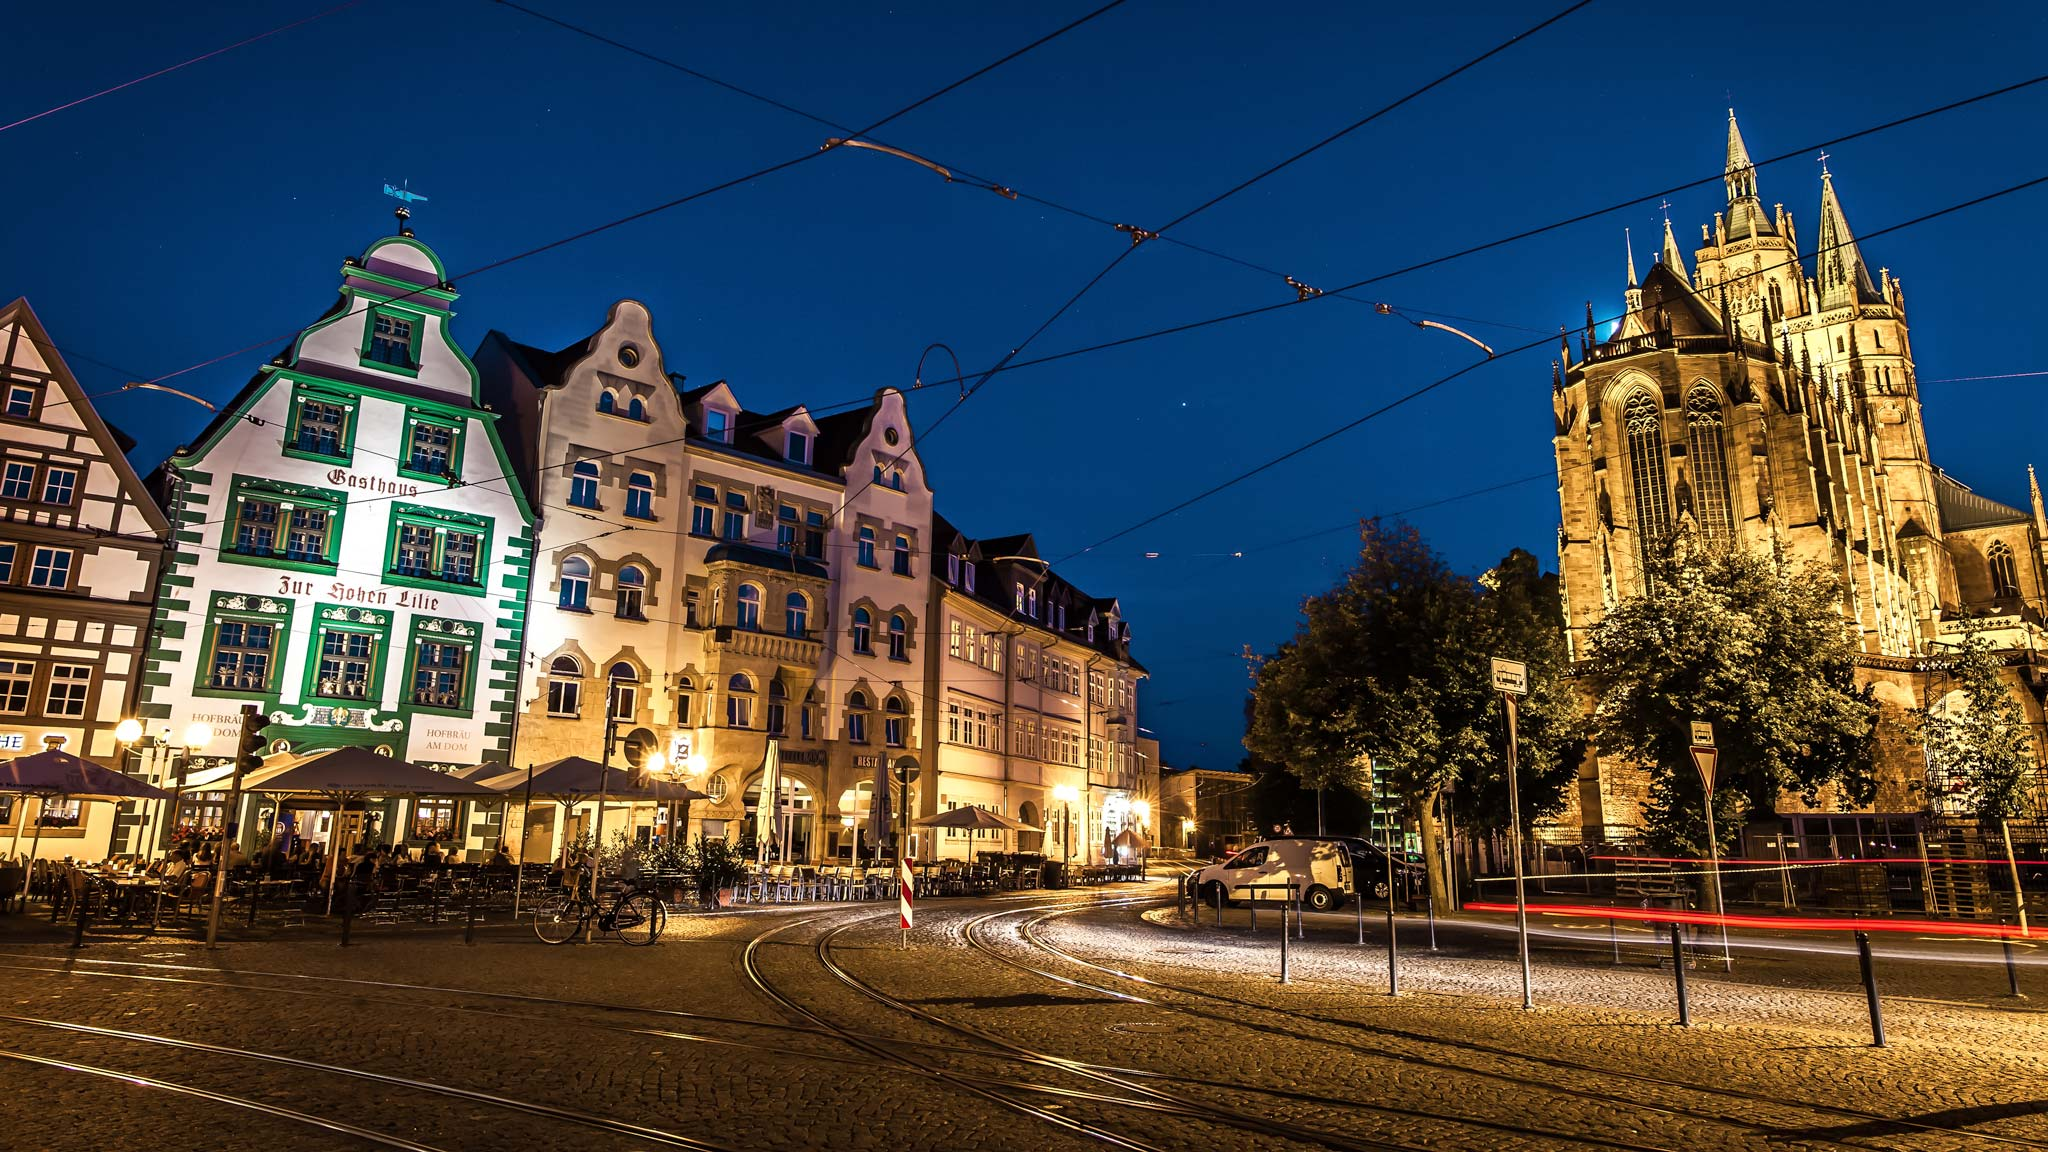 Nightime in Erfurt Thuringia